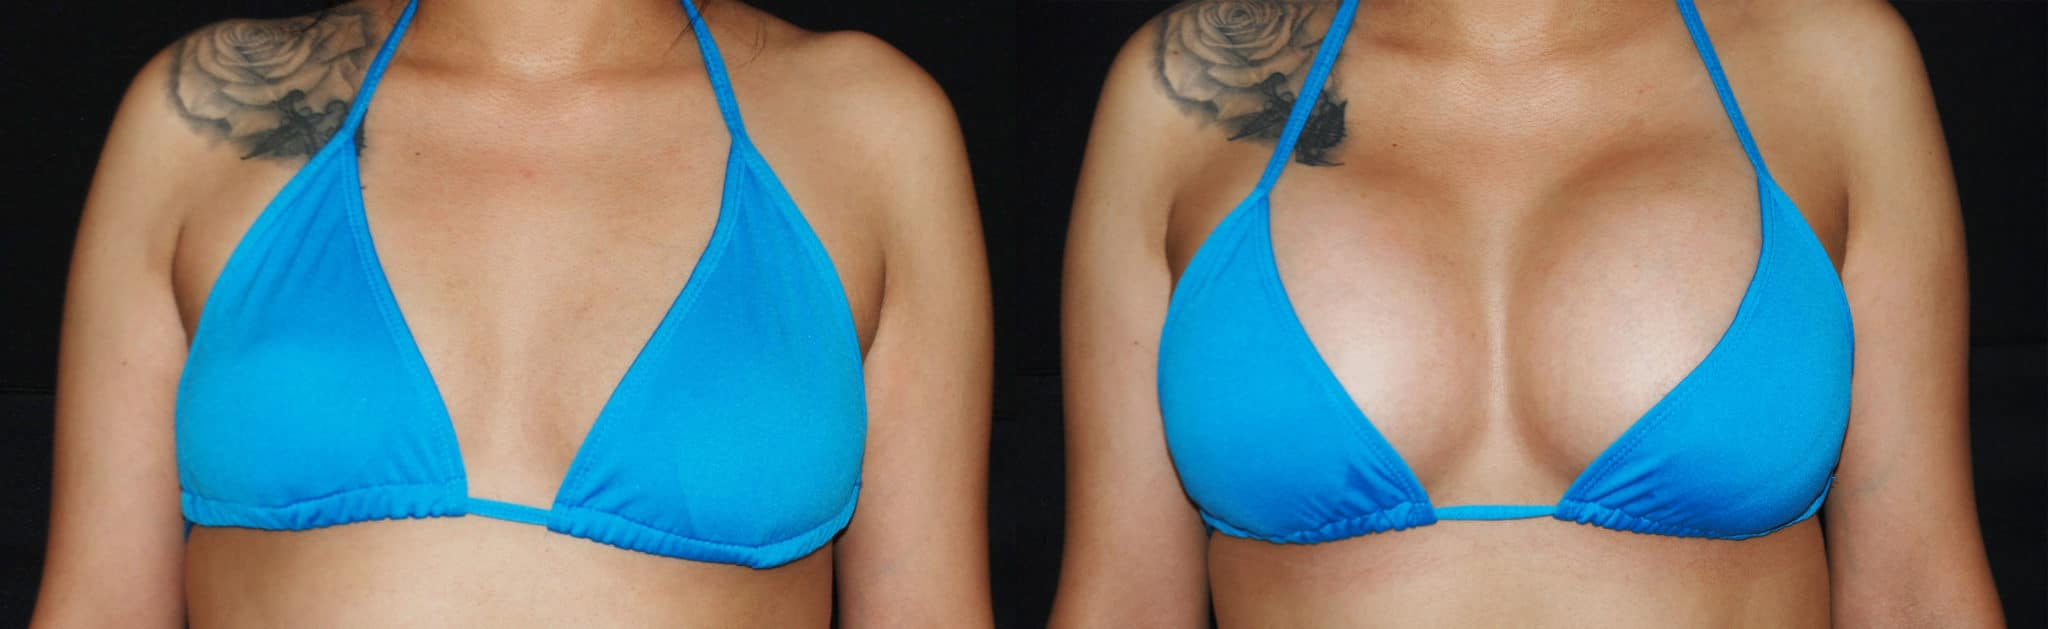 Breast Implants | Breast Augmentation Las Vegas NV